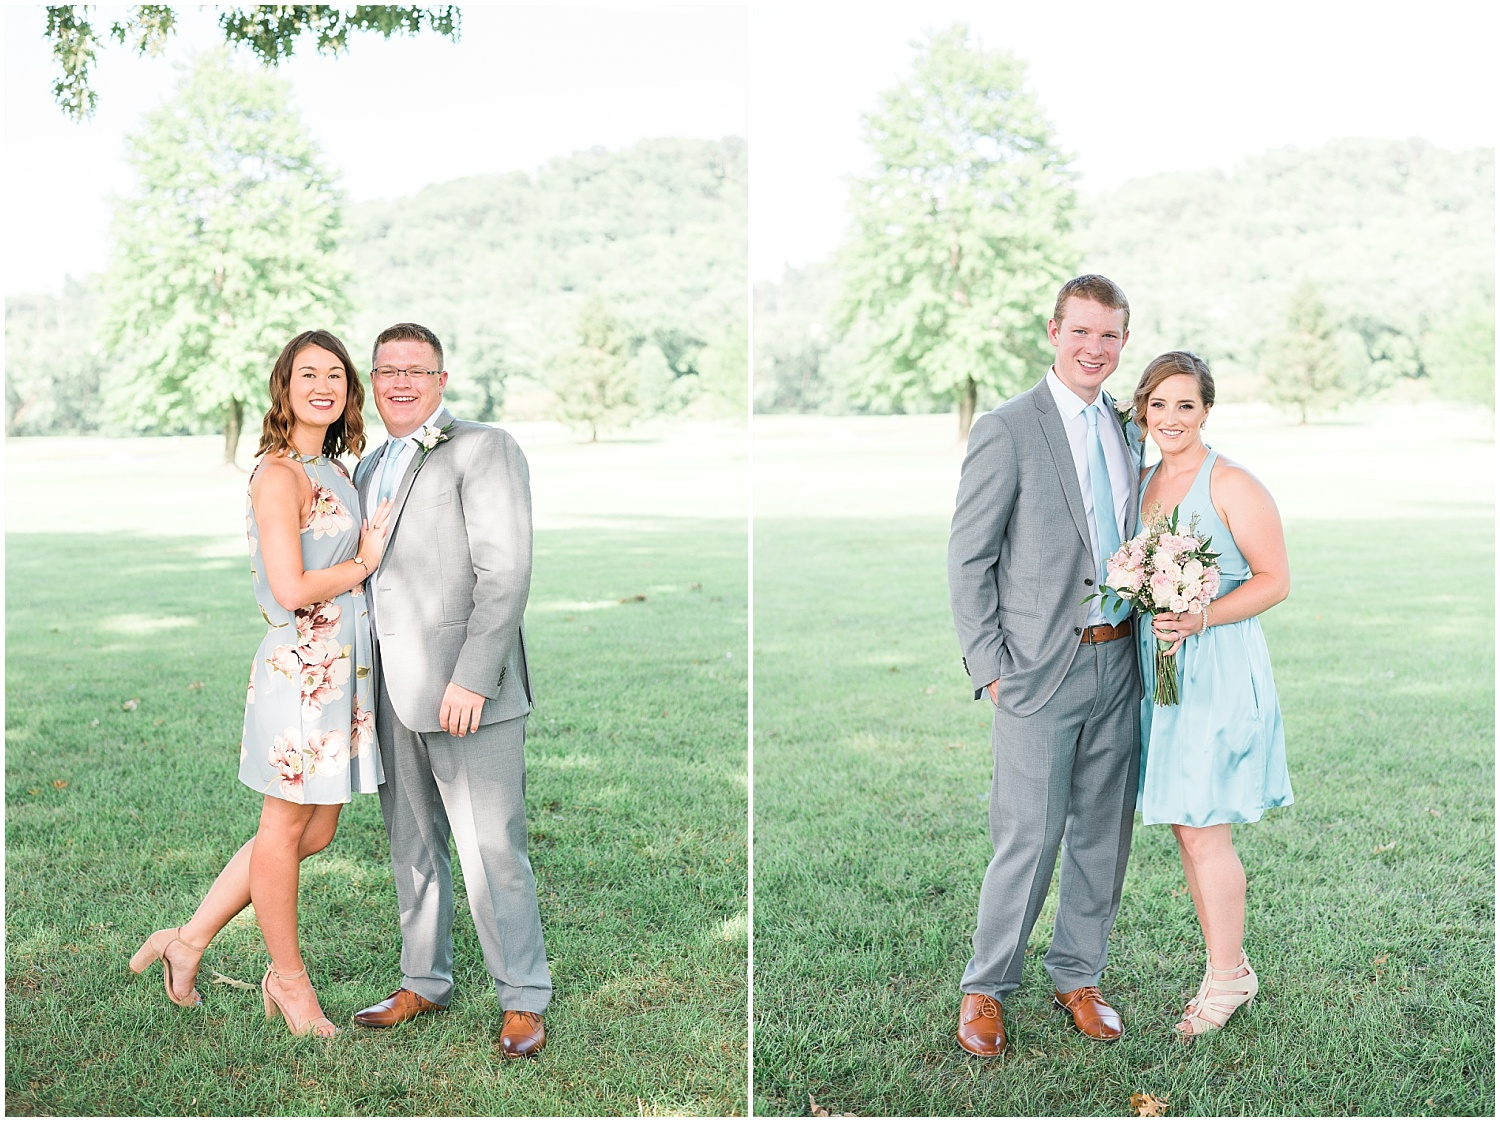 You might recognize the couple on the right from a wedding last fall, Stephanie and Michael!